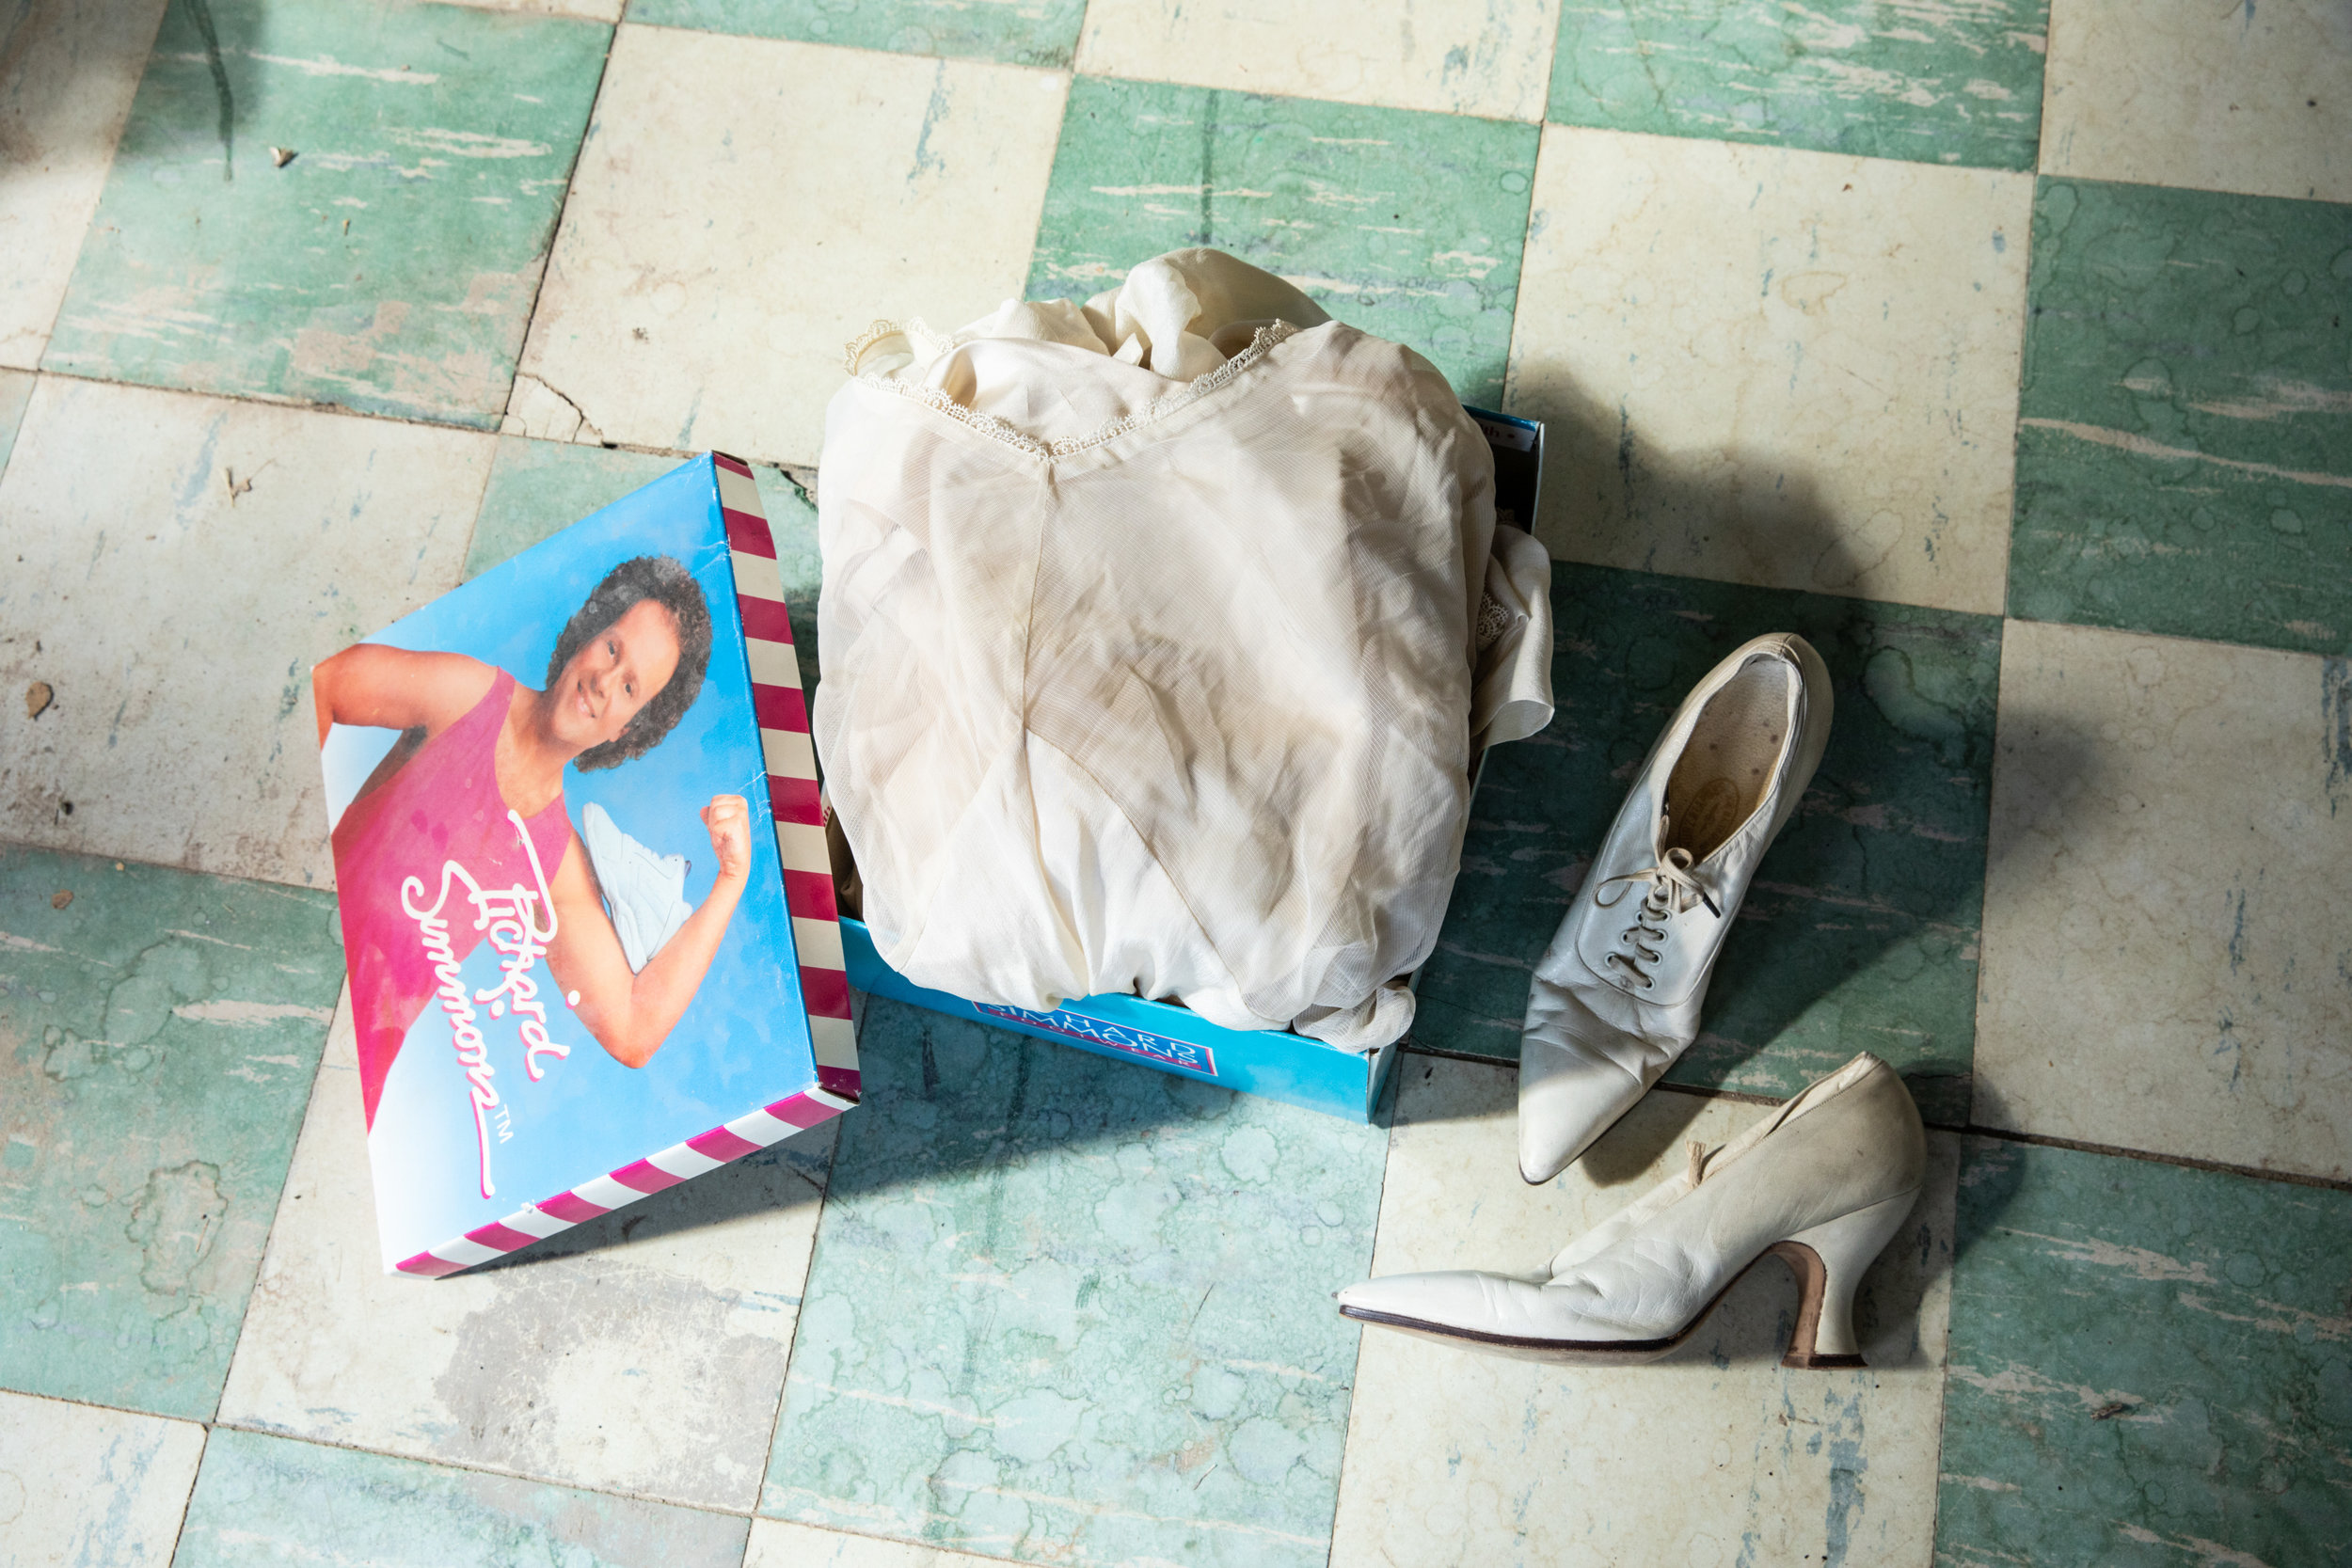 The Richard Simmons box my Great Grandmother's wedding dress, shoes & stockings were found in.